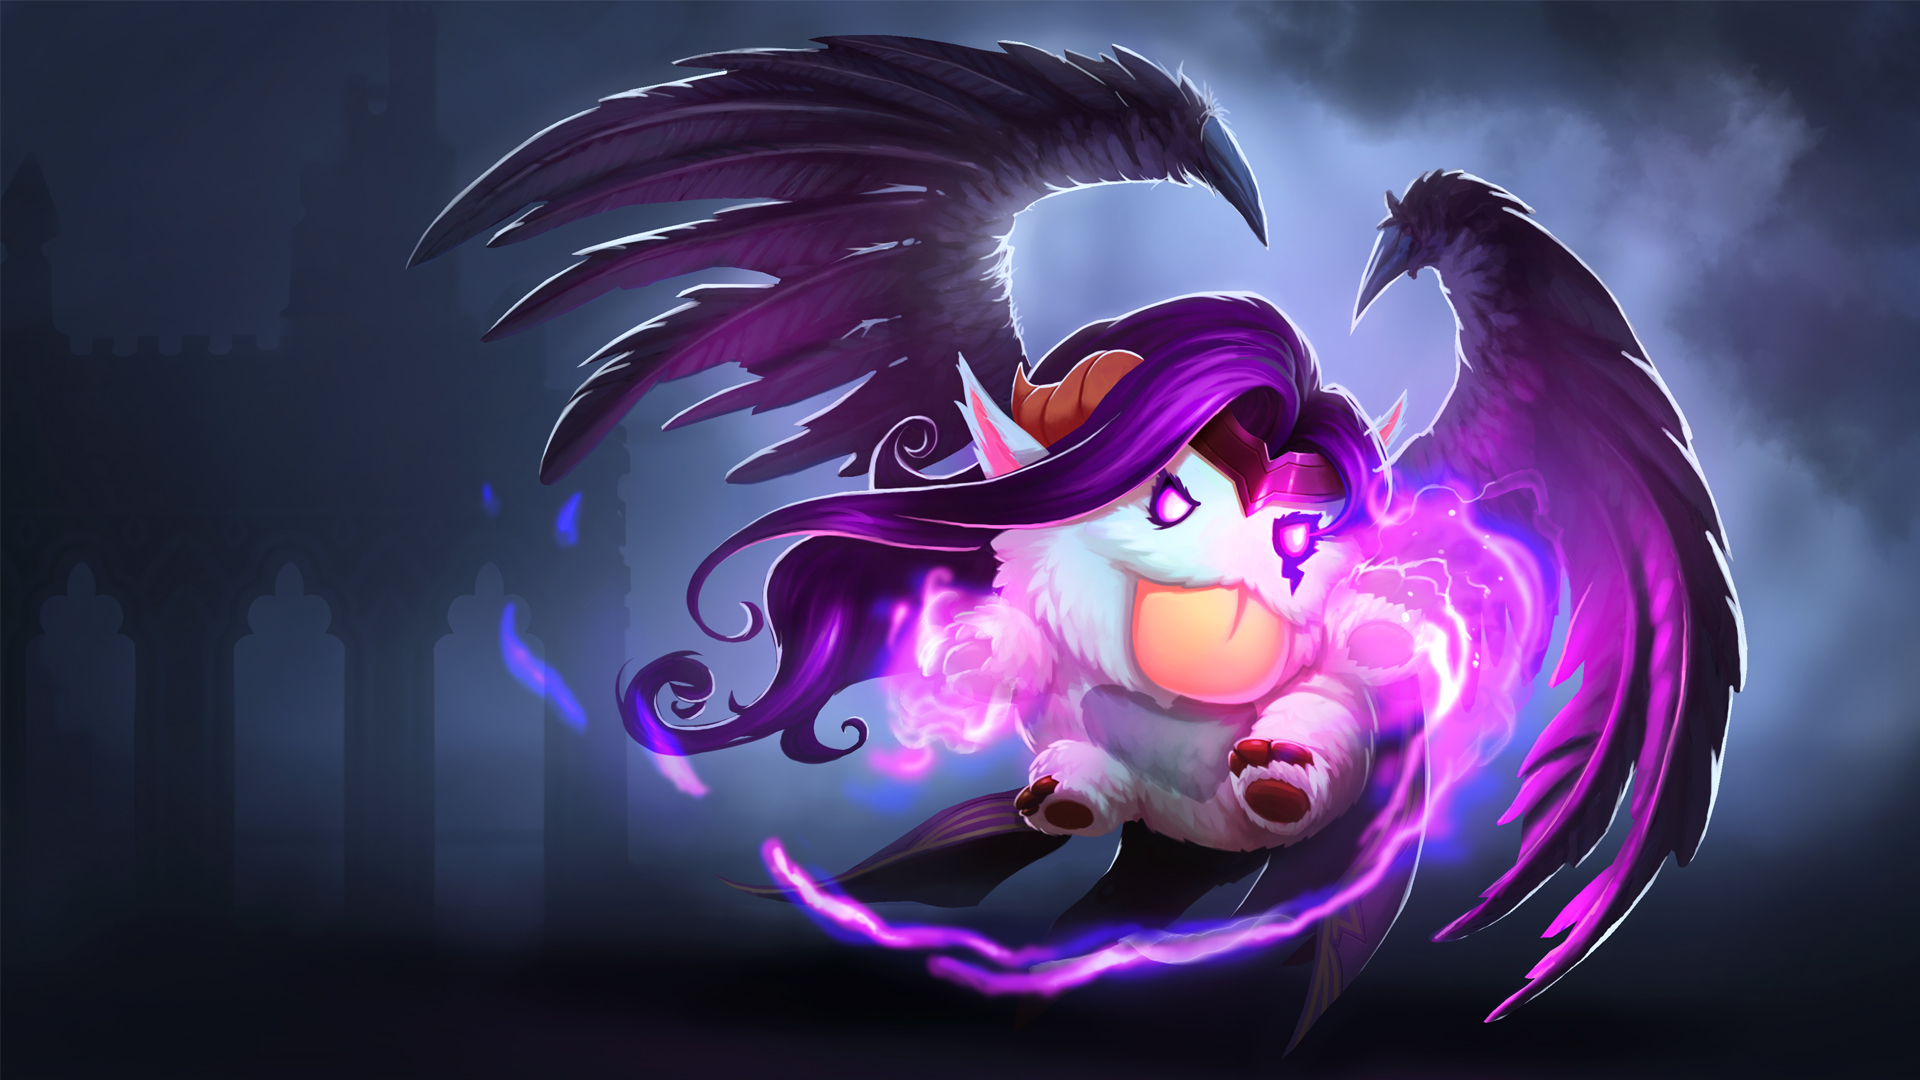 Morgana Poro wallpaper